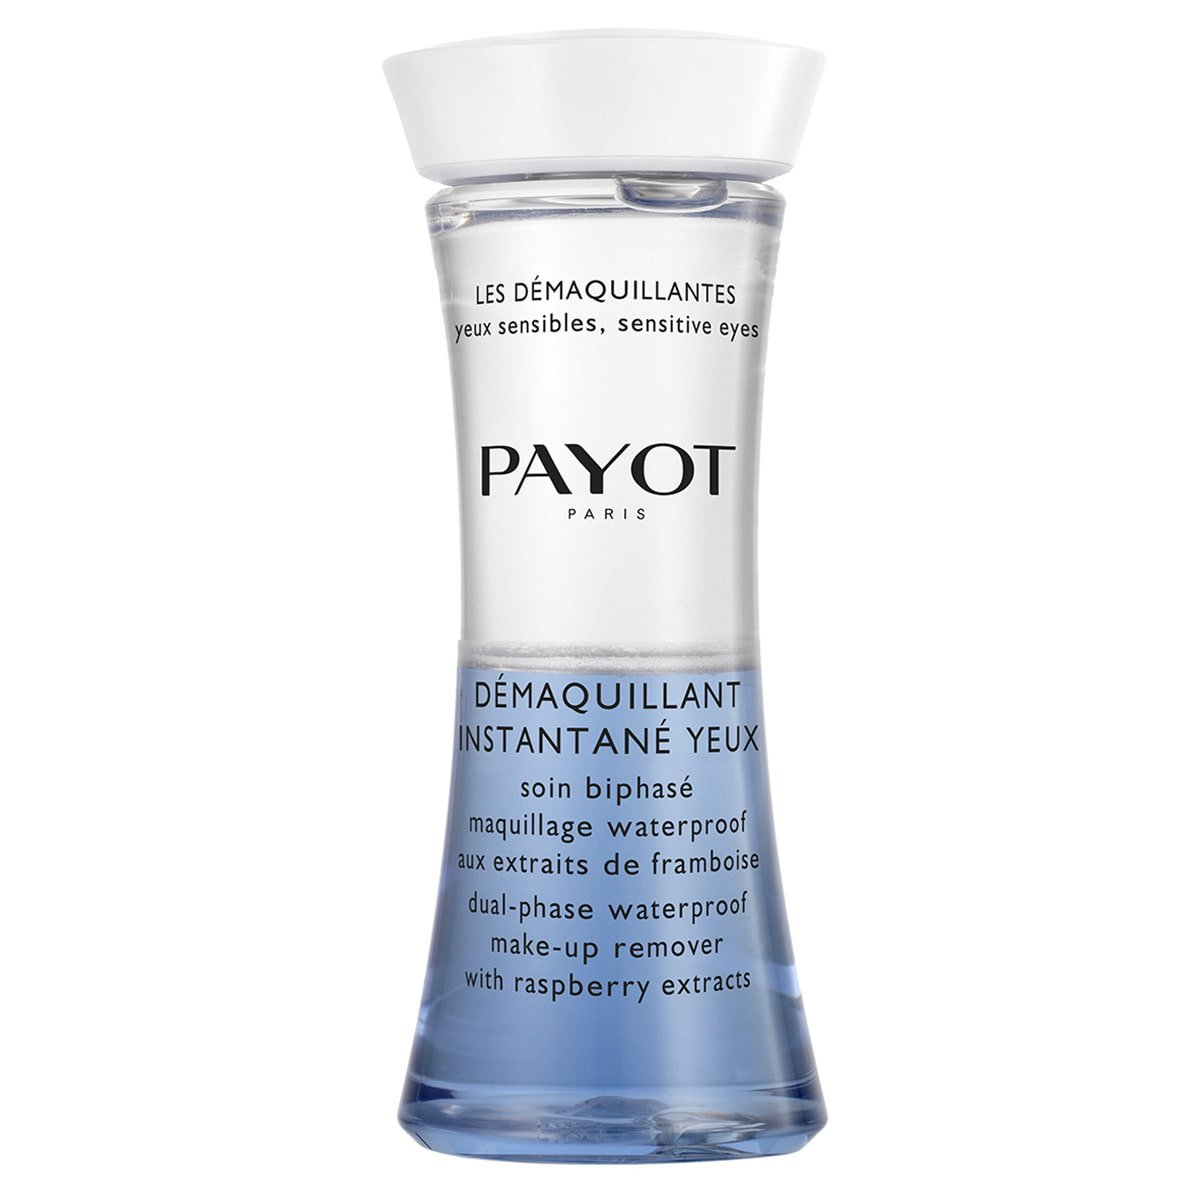 Payot - Démaquillant Instantané Yeux - Soin biphasé maquillage waterproof